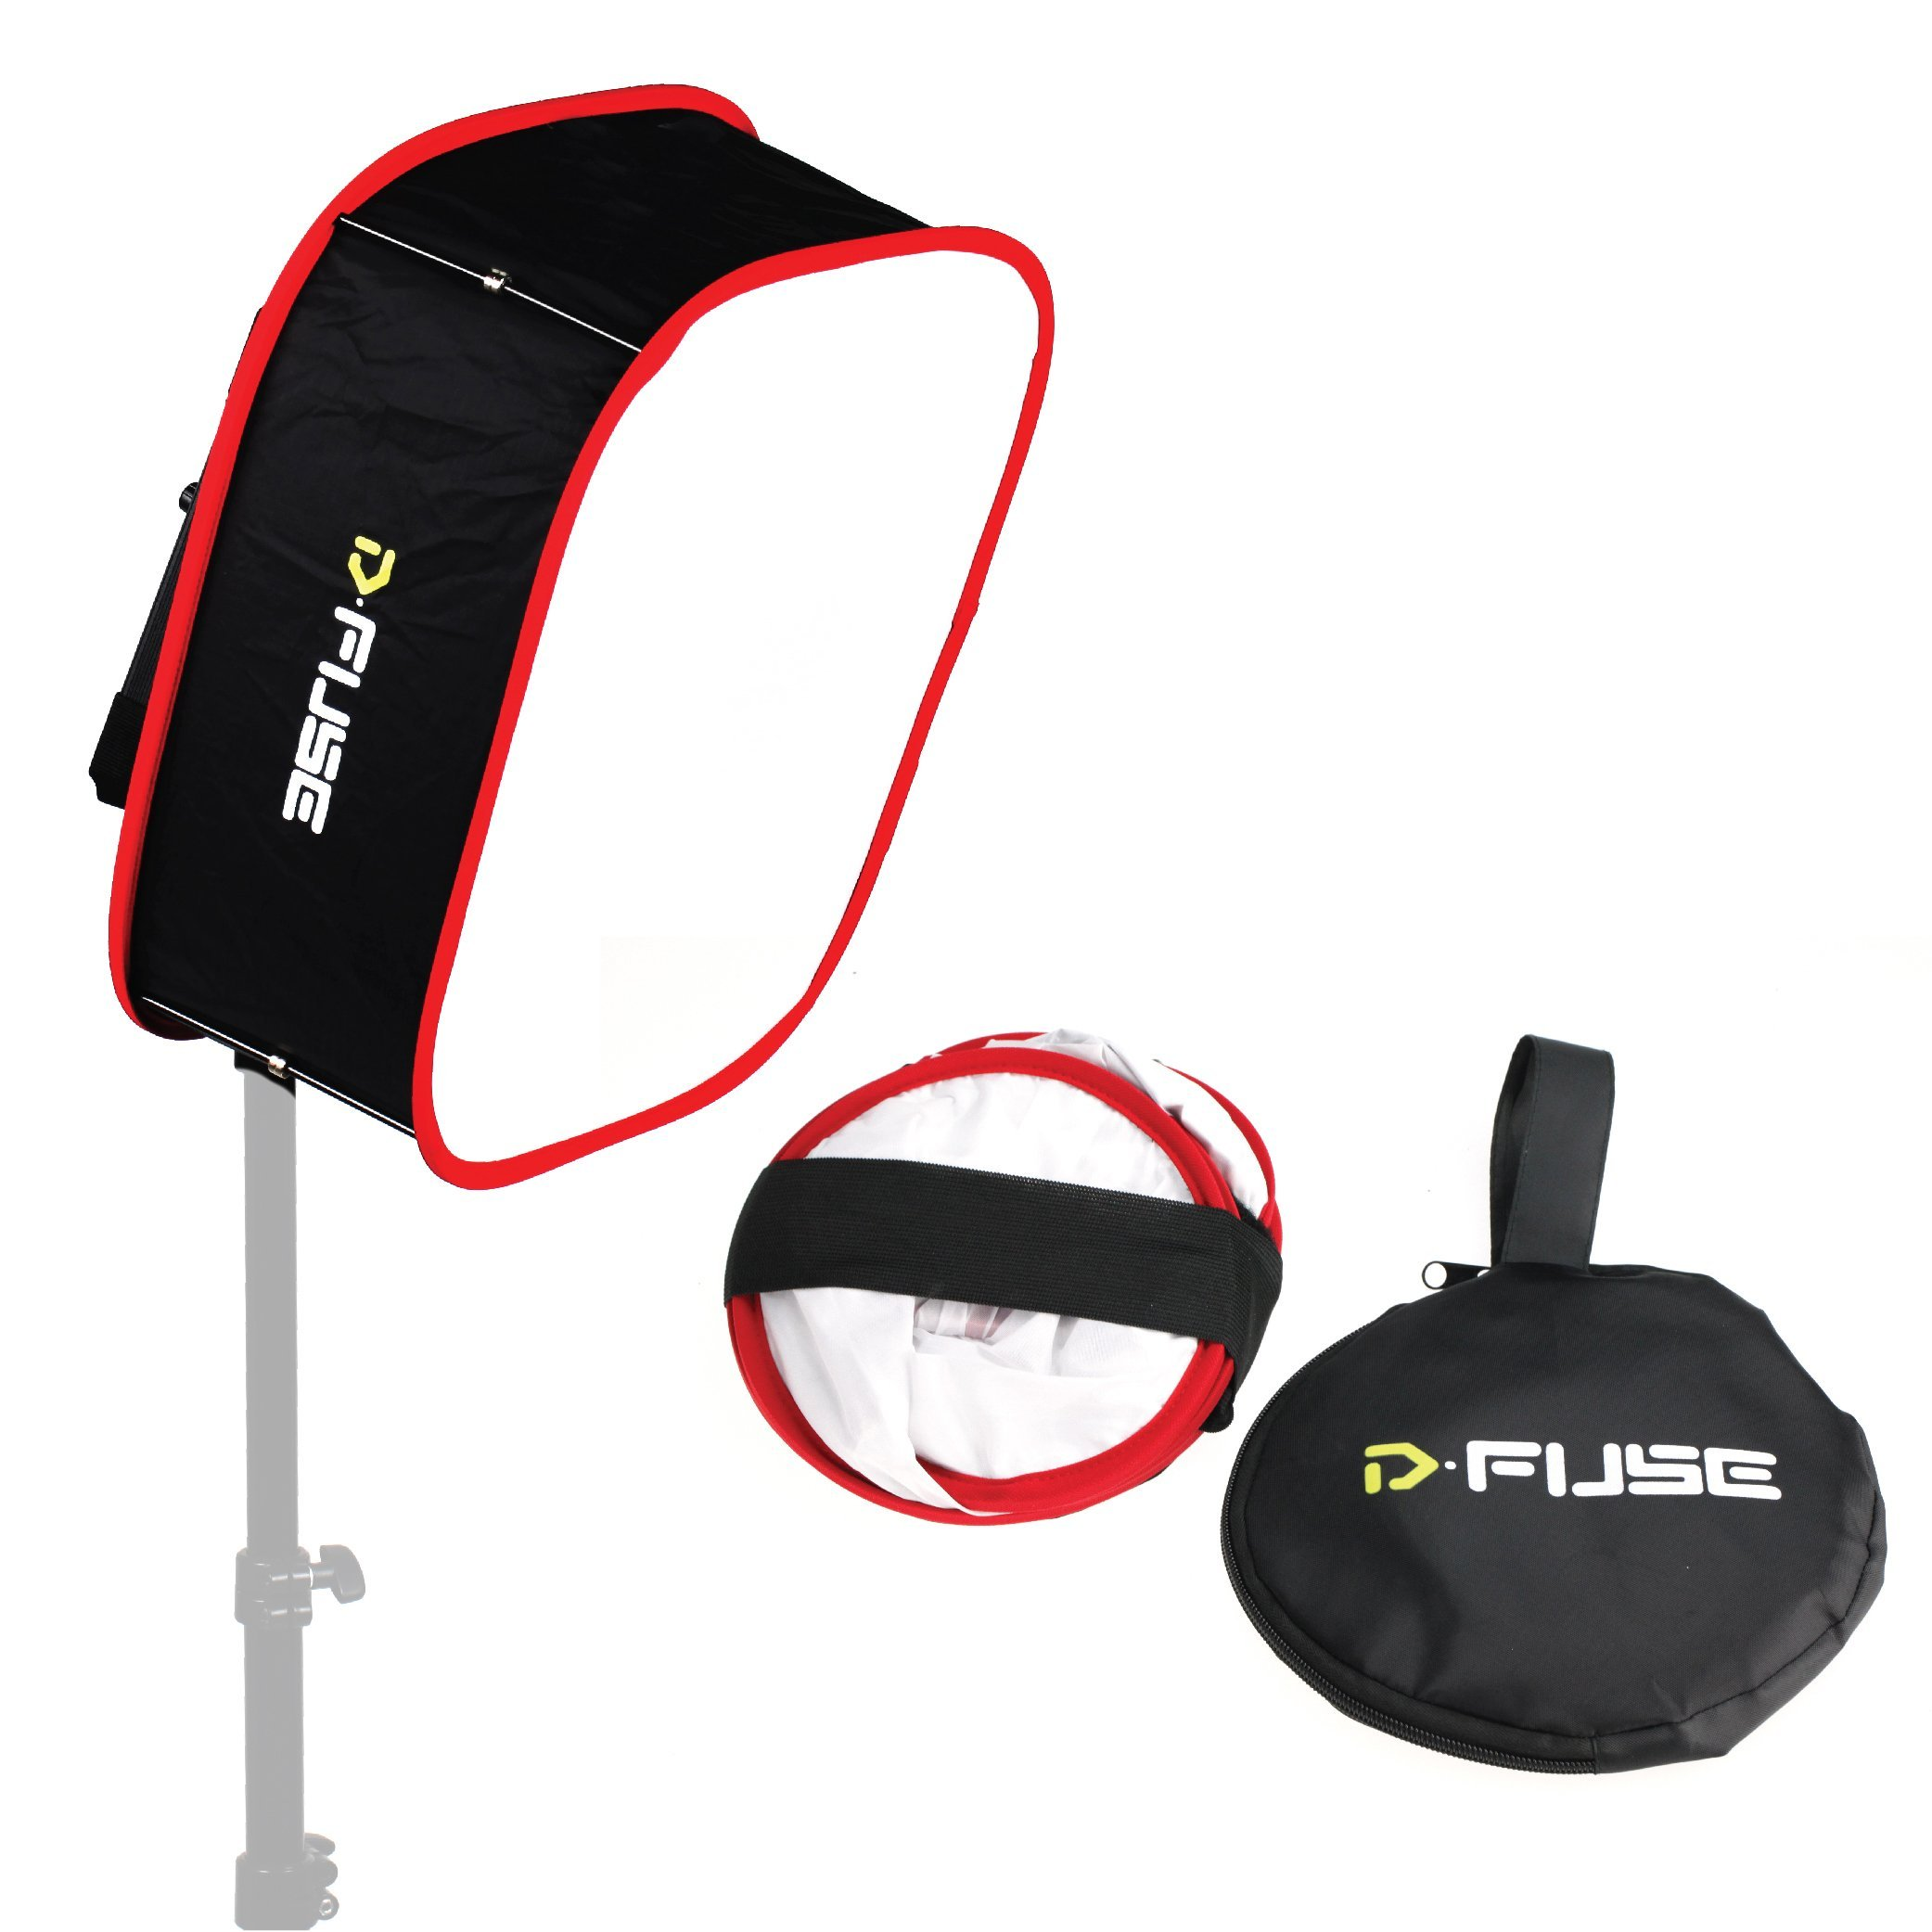 Kamerar D-Fuse Large LED Light Panel Softbox: 12''x12'' Opening, Foldable Portable Light Diffuser, Carrying Bag, Strap Attachment, Portrait  Photography, Photo Video, Studio Lighting, Natural Look by Kamerar